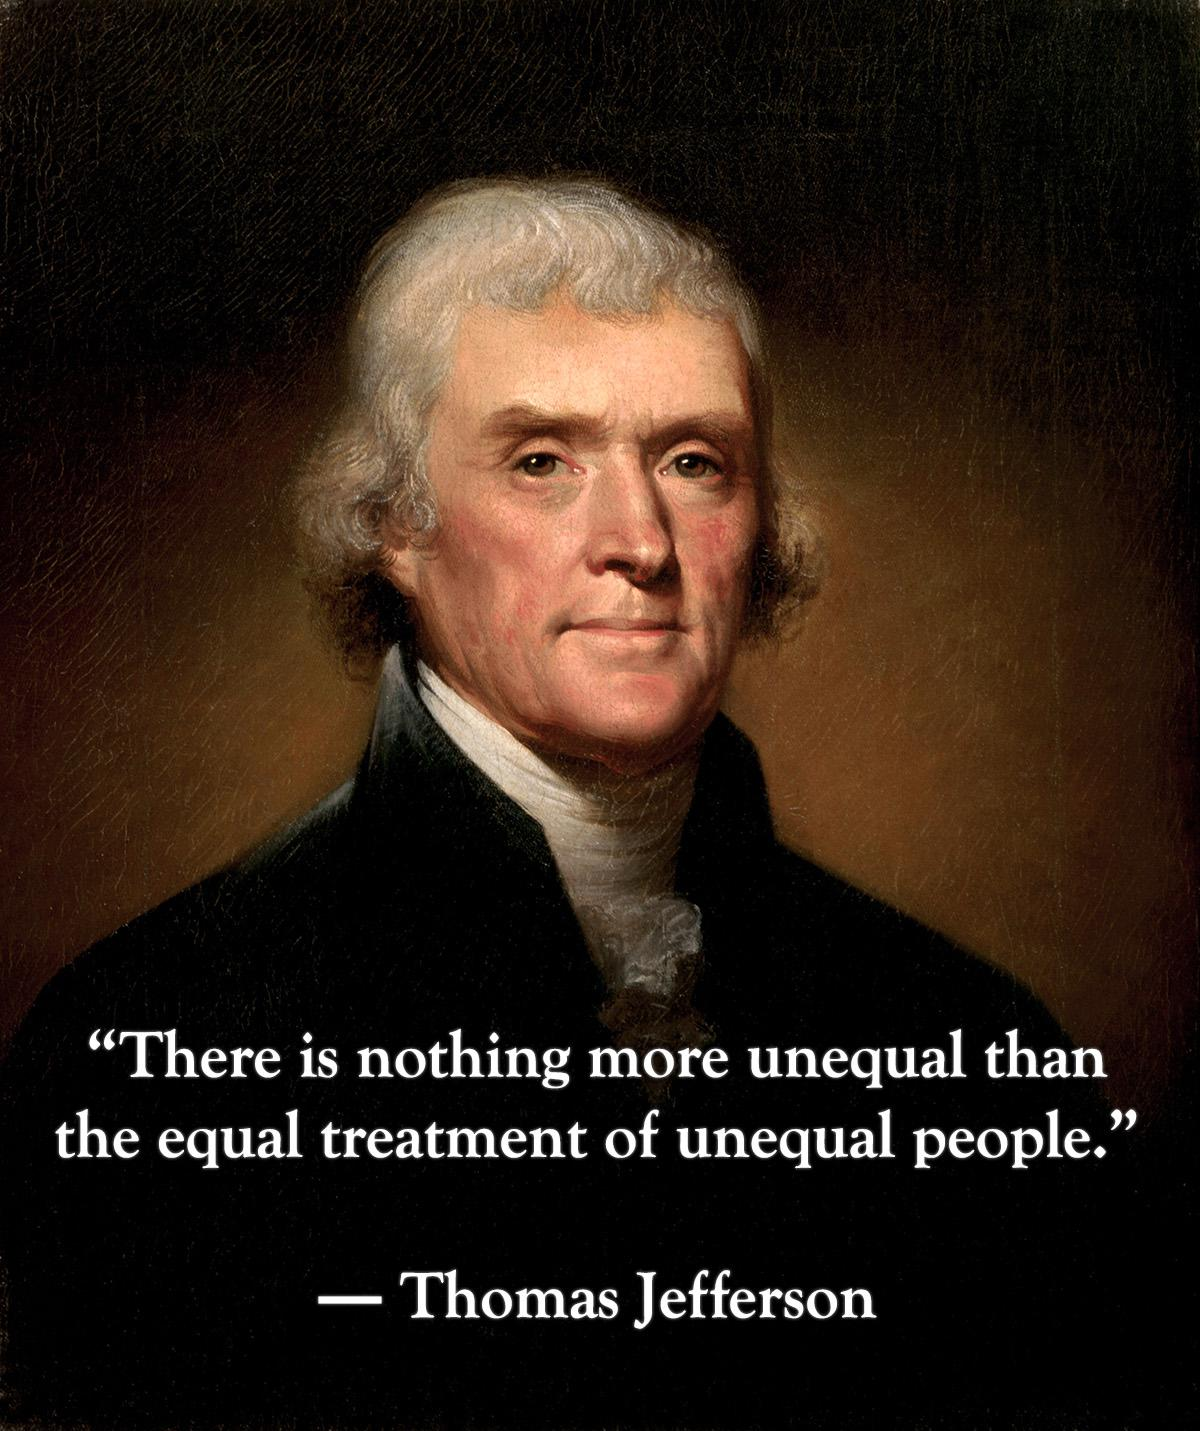 """There is nothing more unequal than the equal treatment of unequal people."" – Thomas Jefferson [OC][1200×1421]"